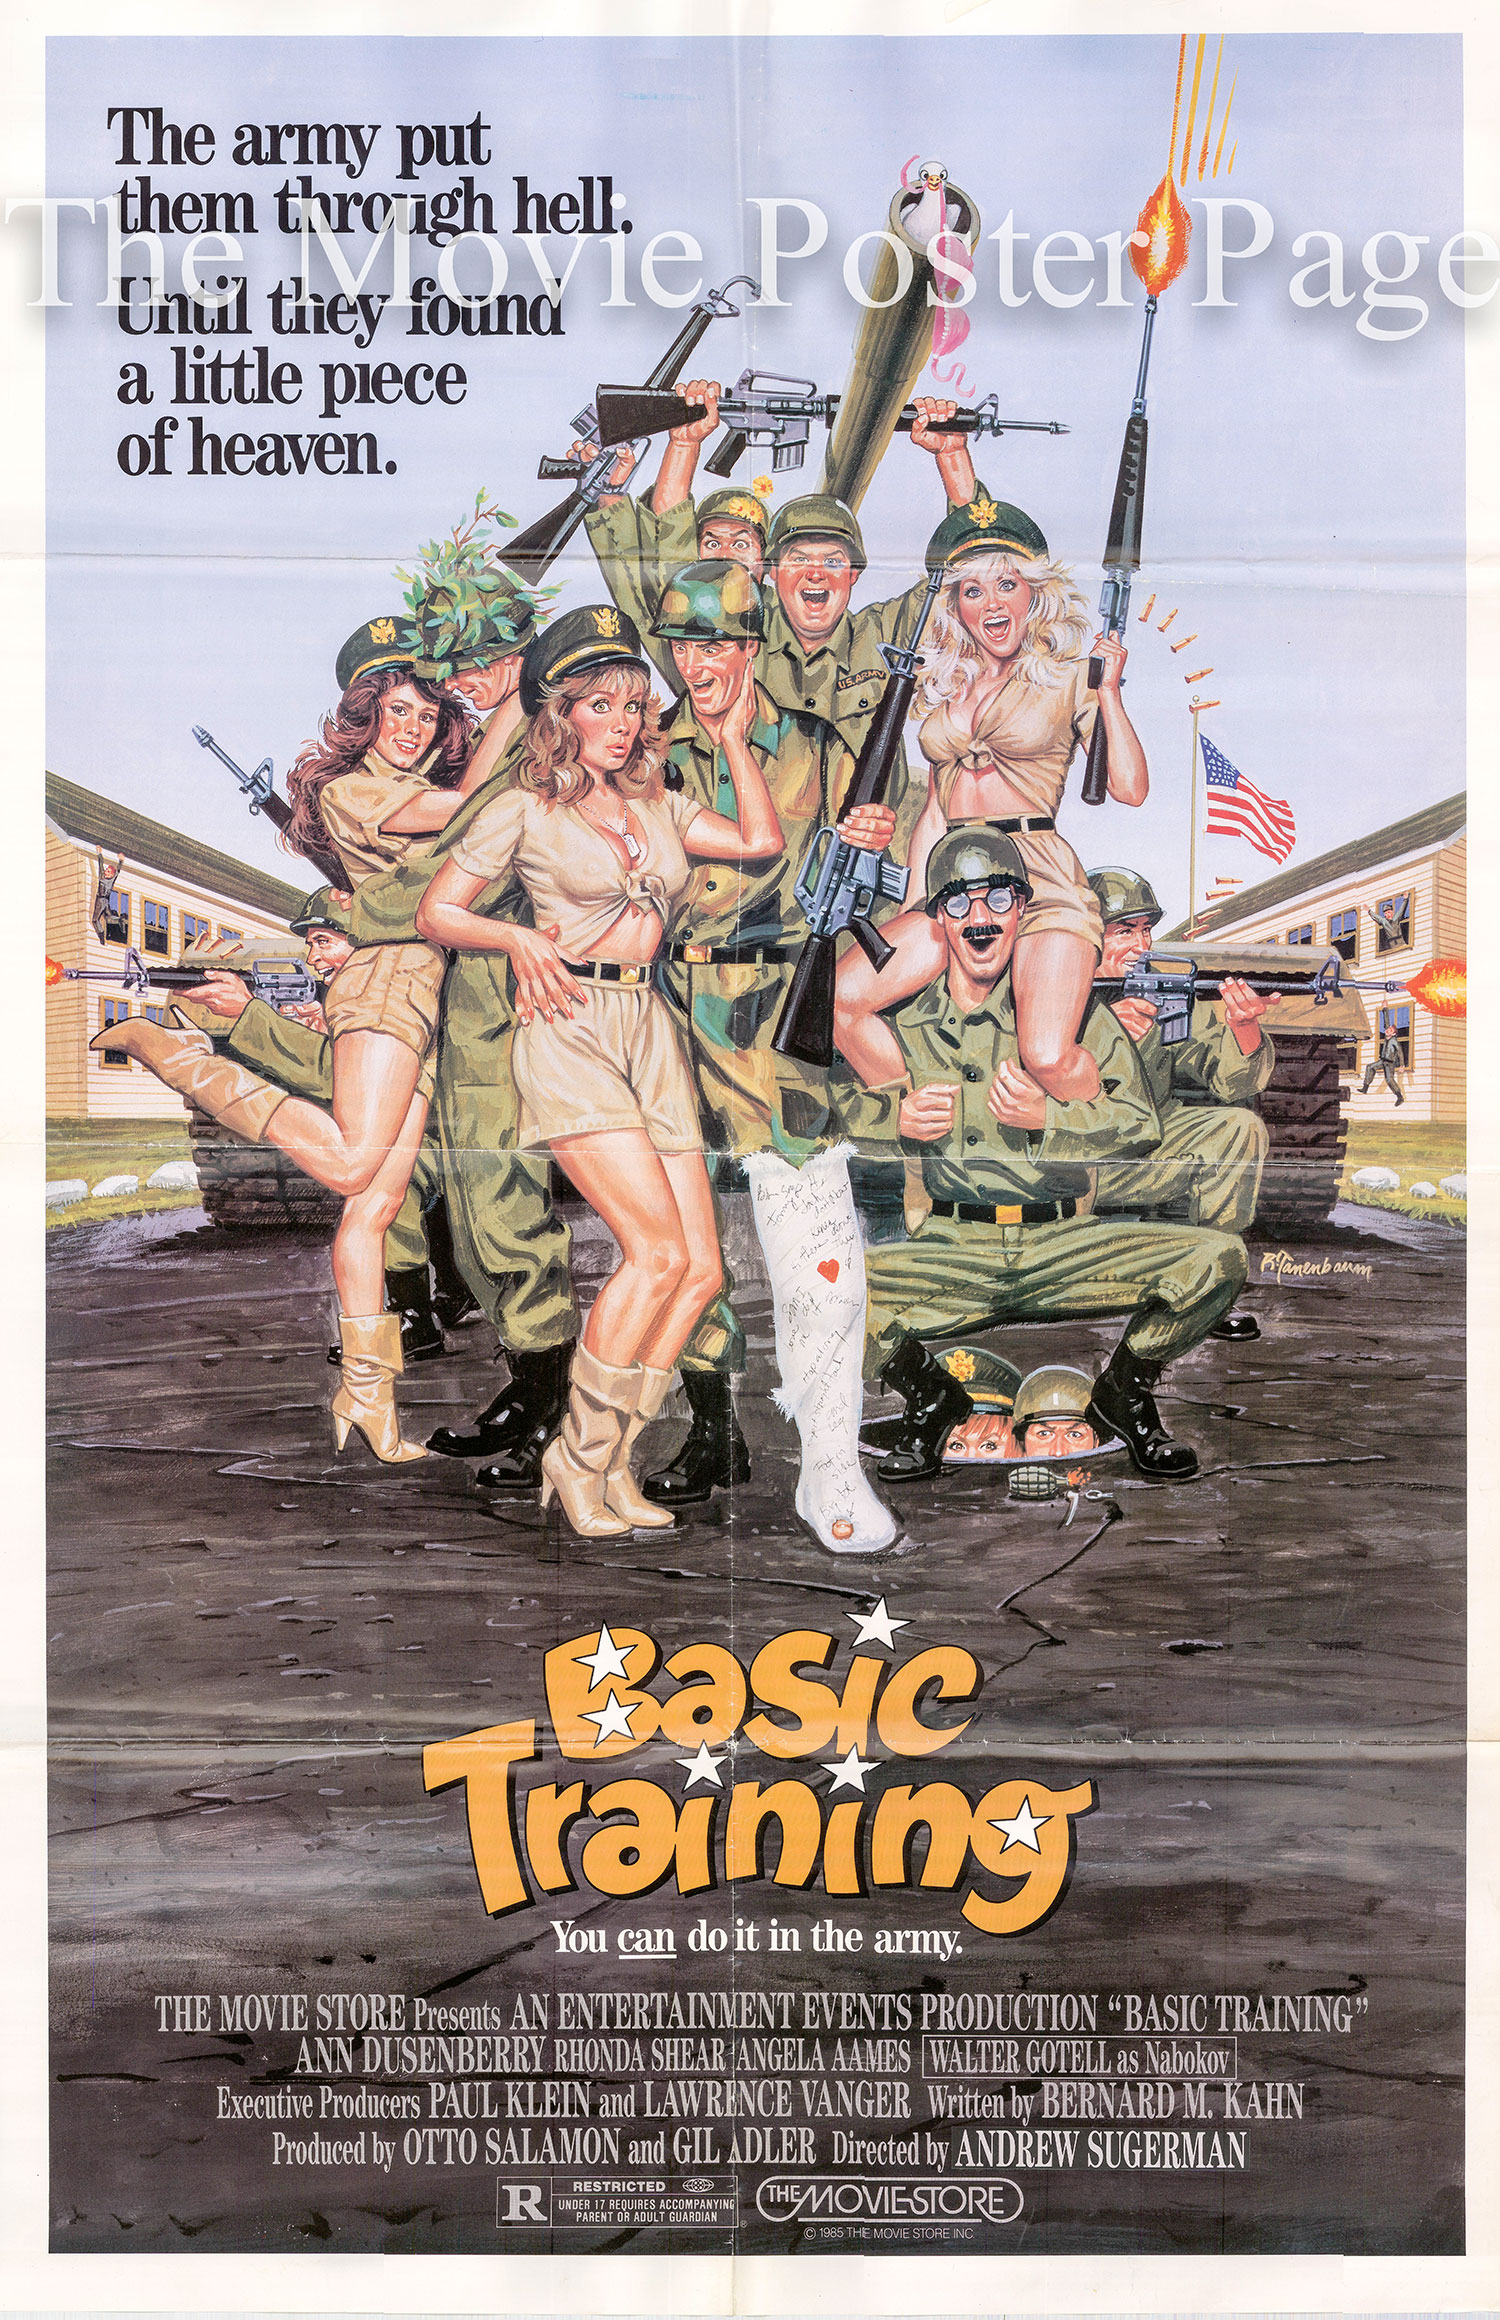 Pictured is a US one-sheet poster for the 1985 Andrew Sugarman film Basic Training starring Ann Dusenberry.